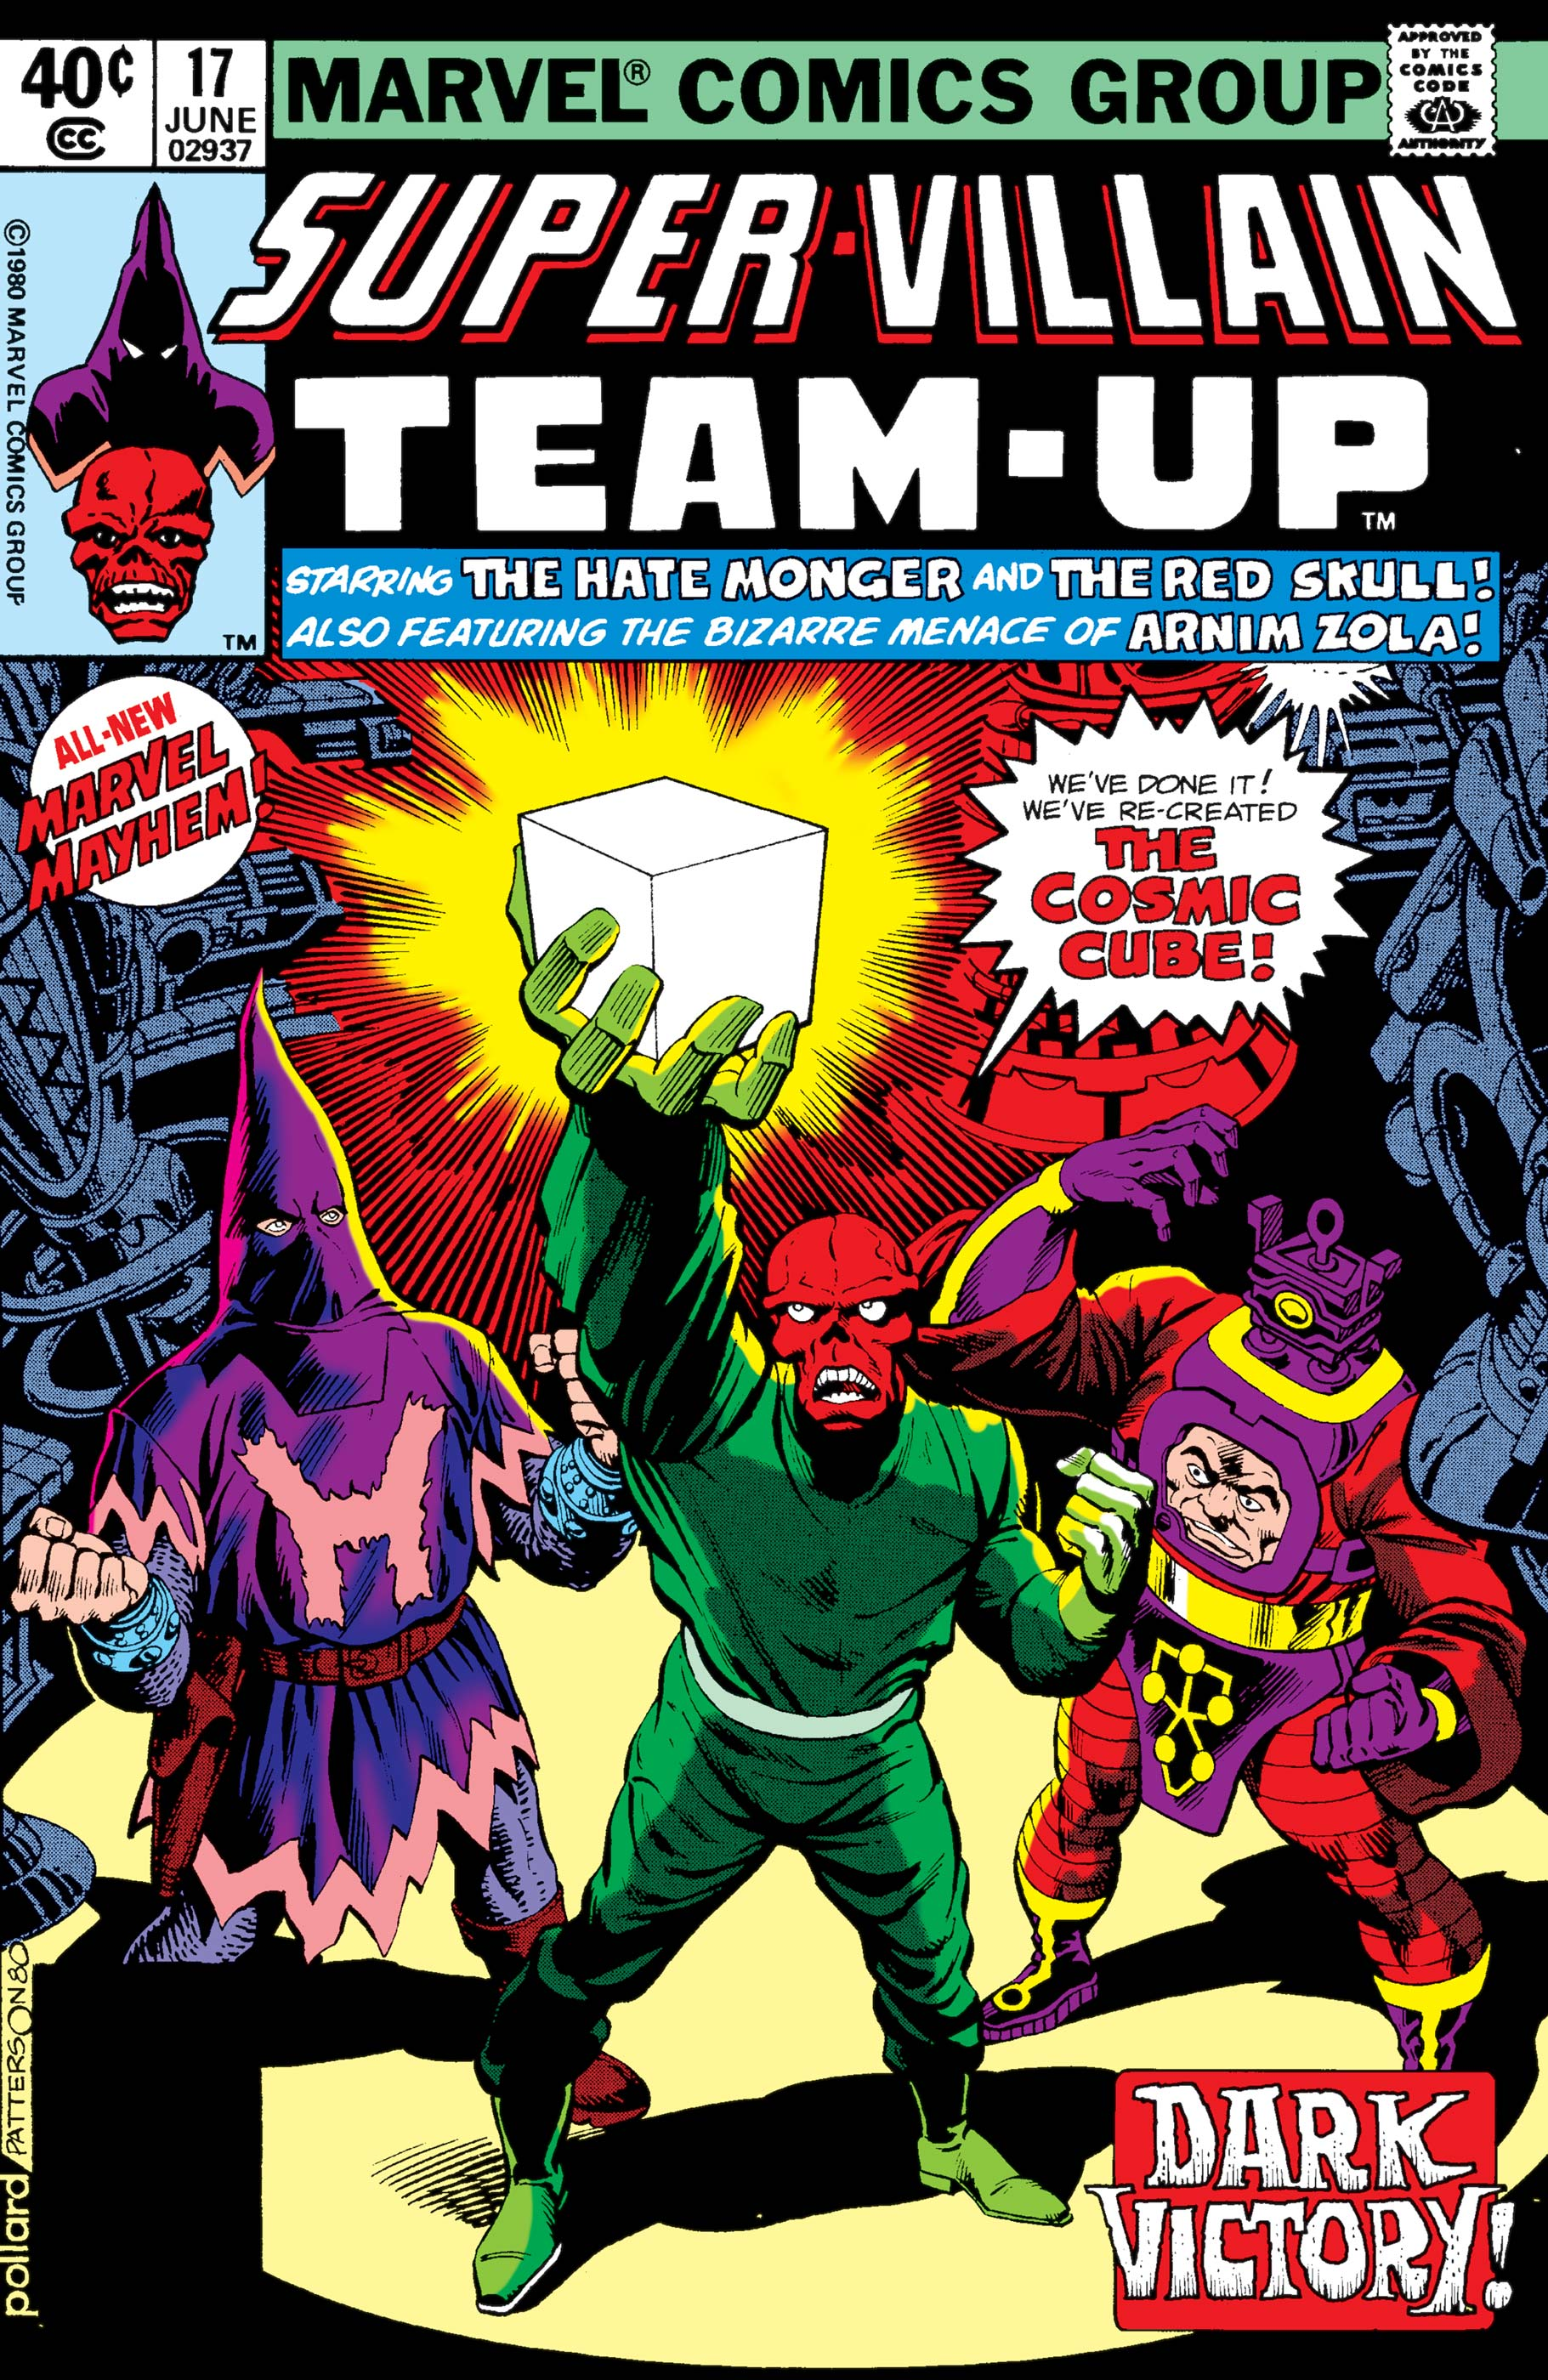 Super-Villain Team-Up (1975) #17